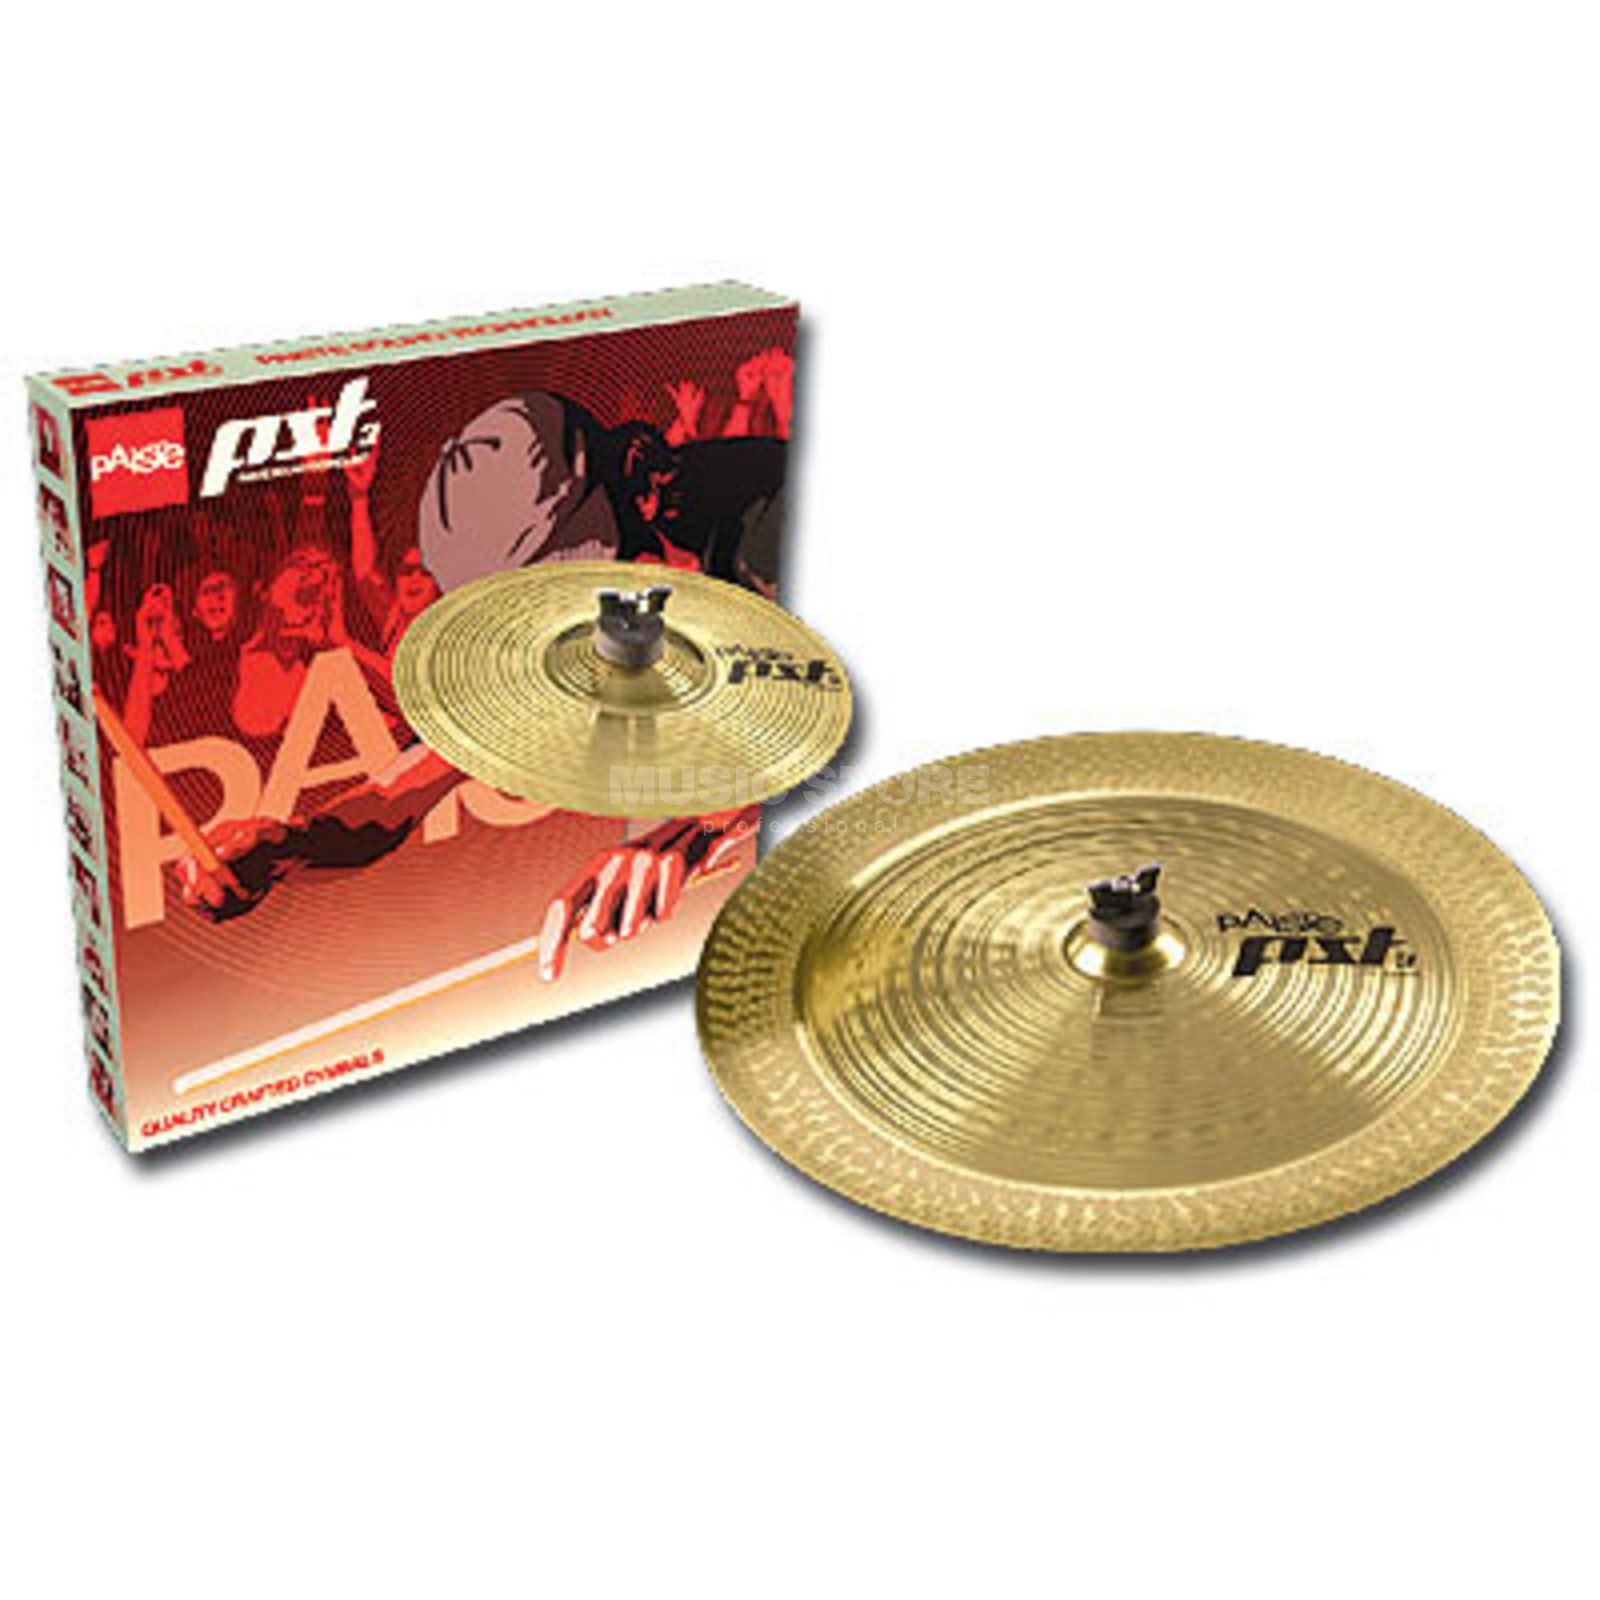 "Paiste PST3 Cymbal Set ""Effects"" 10"" Splash, 18"" China Изображение товара"